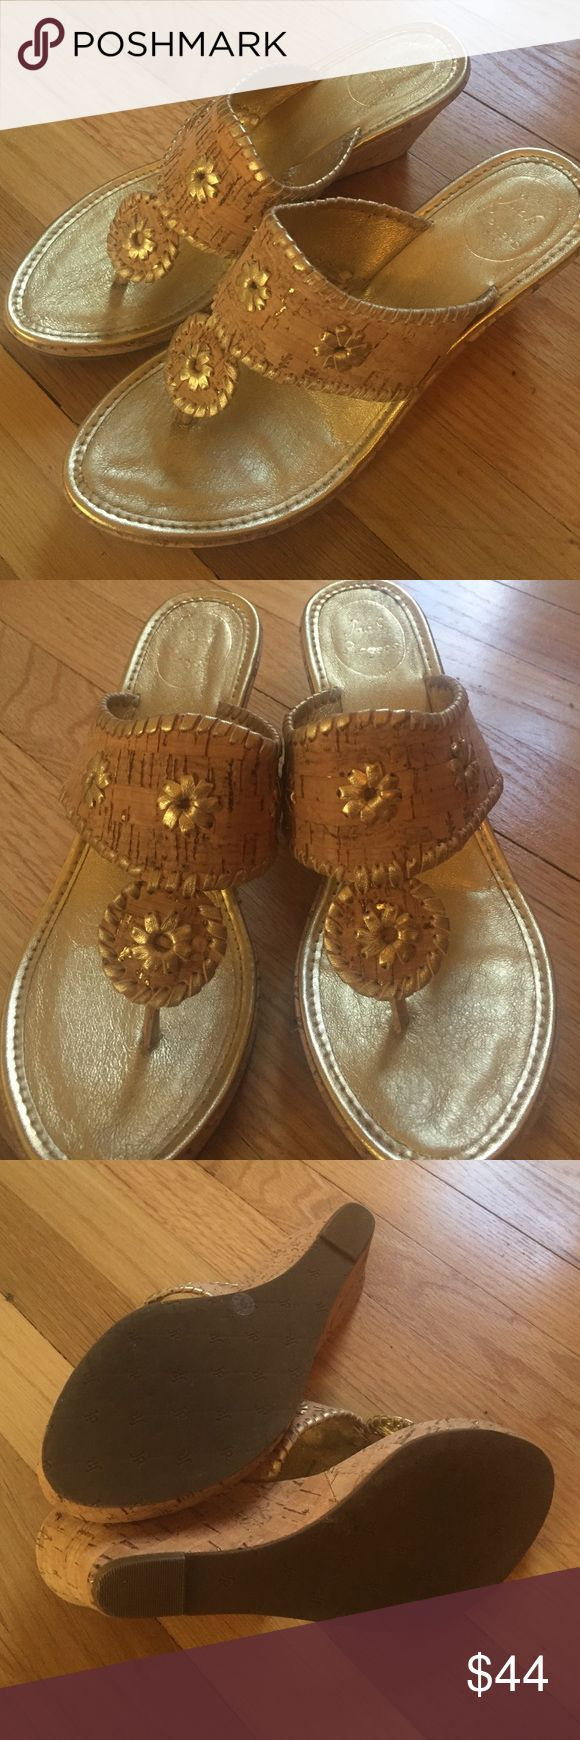 Jack Rogers gold espadrilles size 10 New and only worn once. Jack Rogers gold espadrilles. Perfect for summer and spring. Jack Rogers Shoes Espadrilles